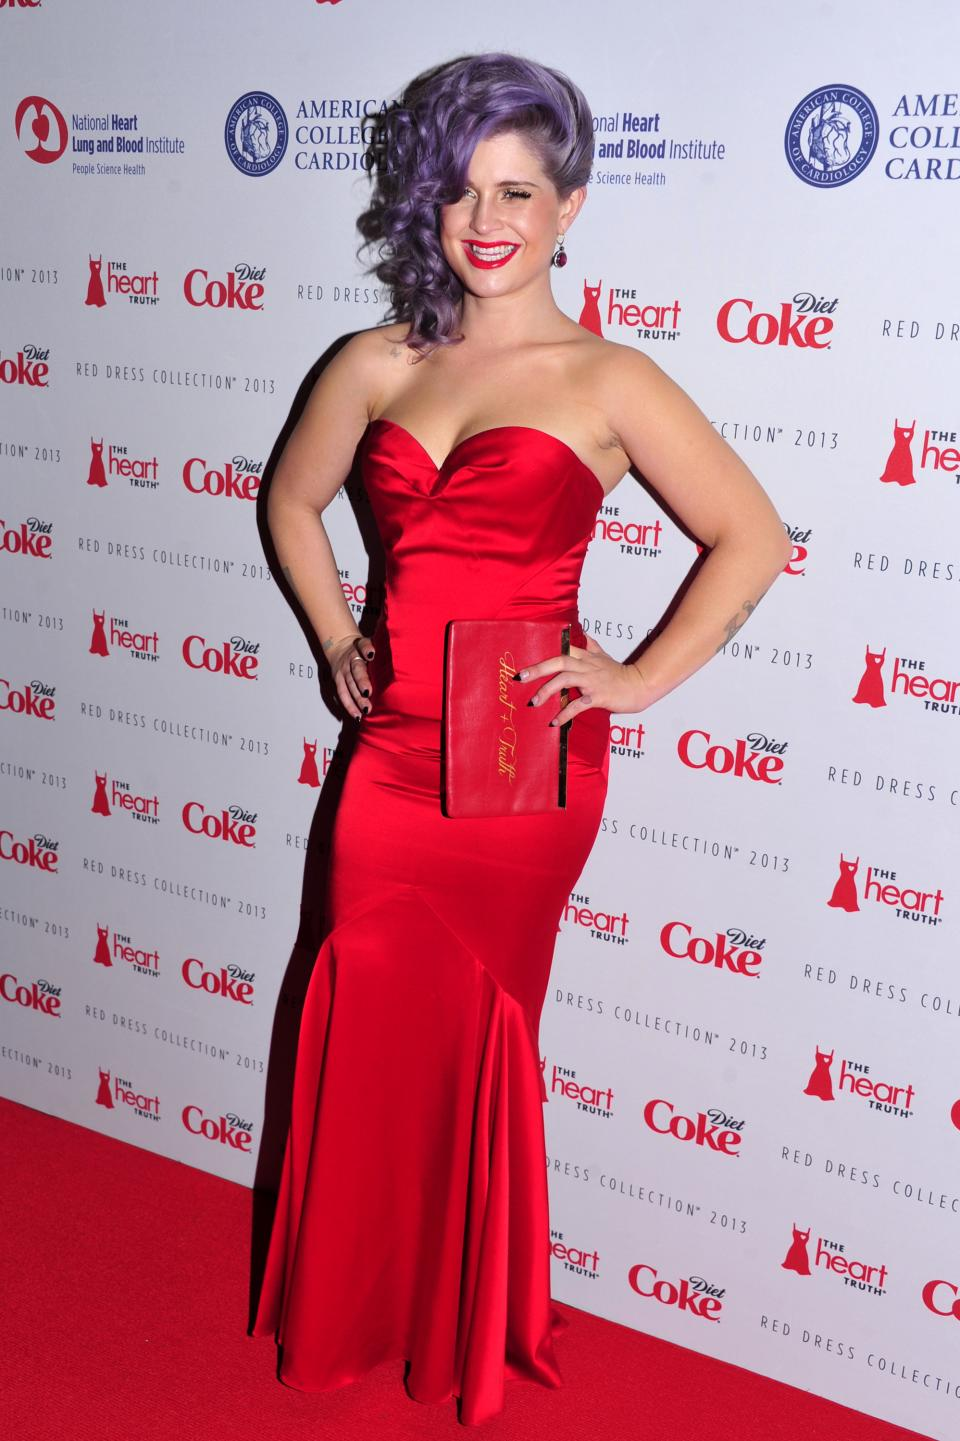 Kelly Osbourne attends the Red Dress Collection 2013 Fashion Show, on Wednesday, Feb. 6, 2013 in New York. (Photo by Charles Sykes/Invision/AP)